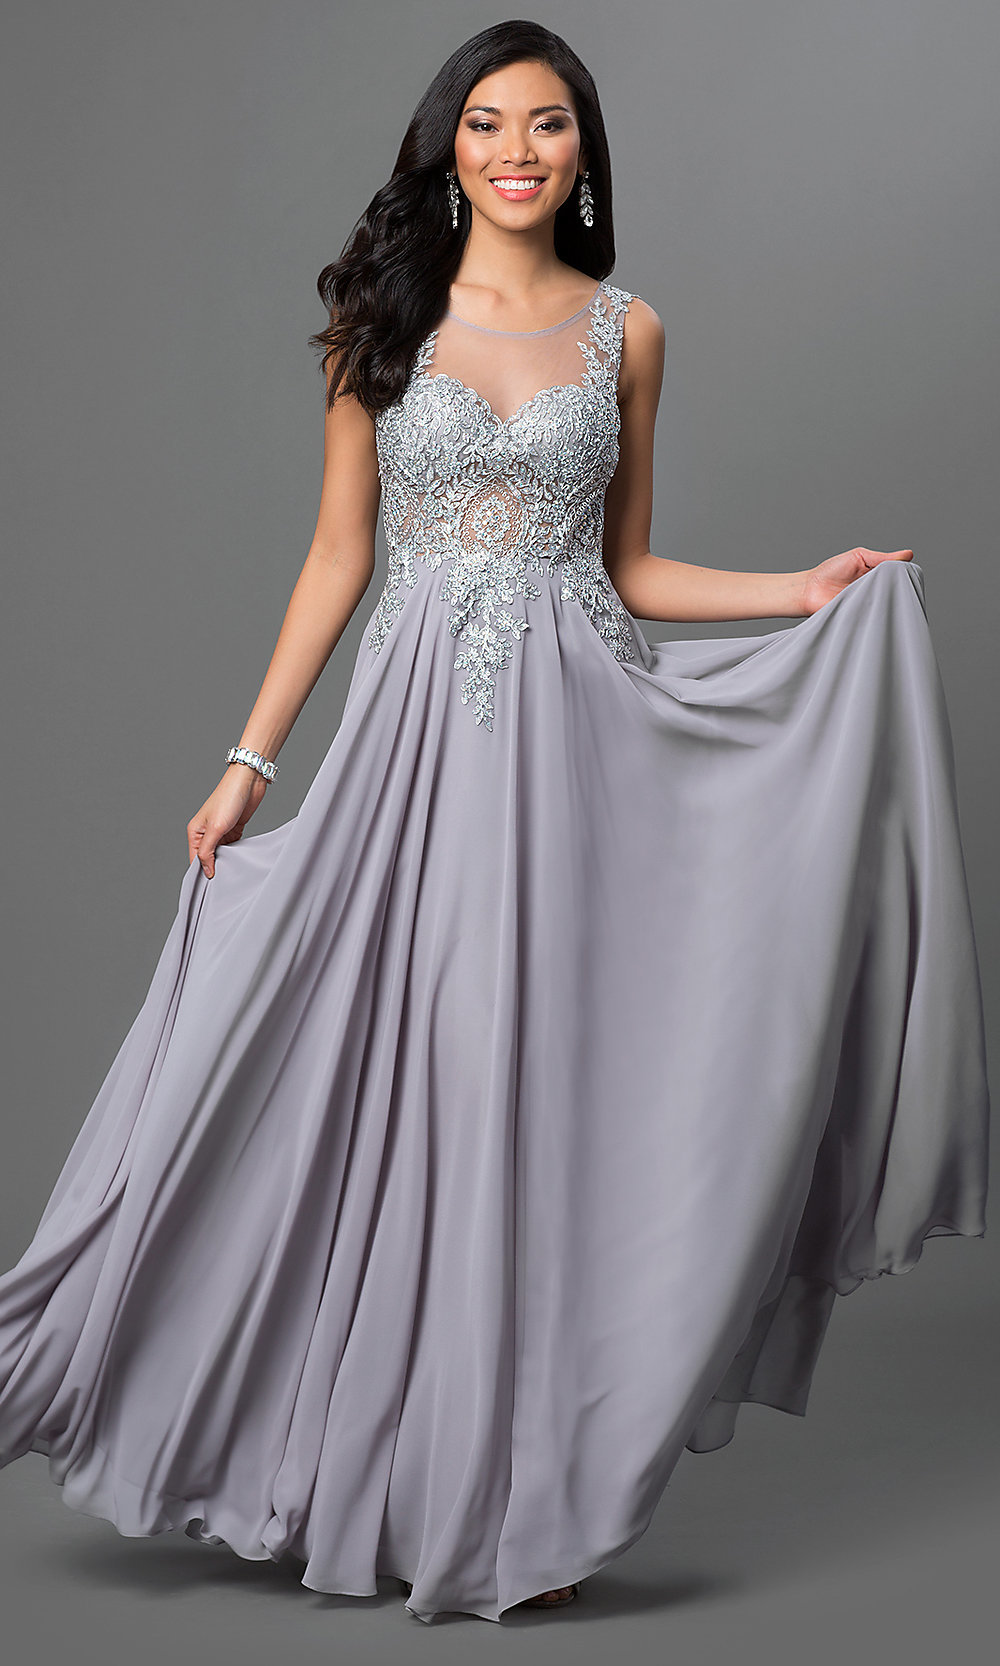 Jewel Embellished Long Sleeveless Dress-PromGirl